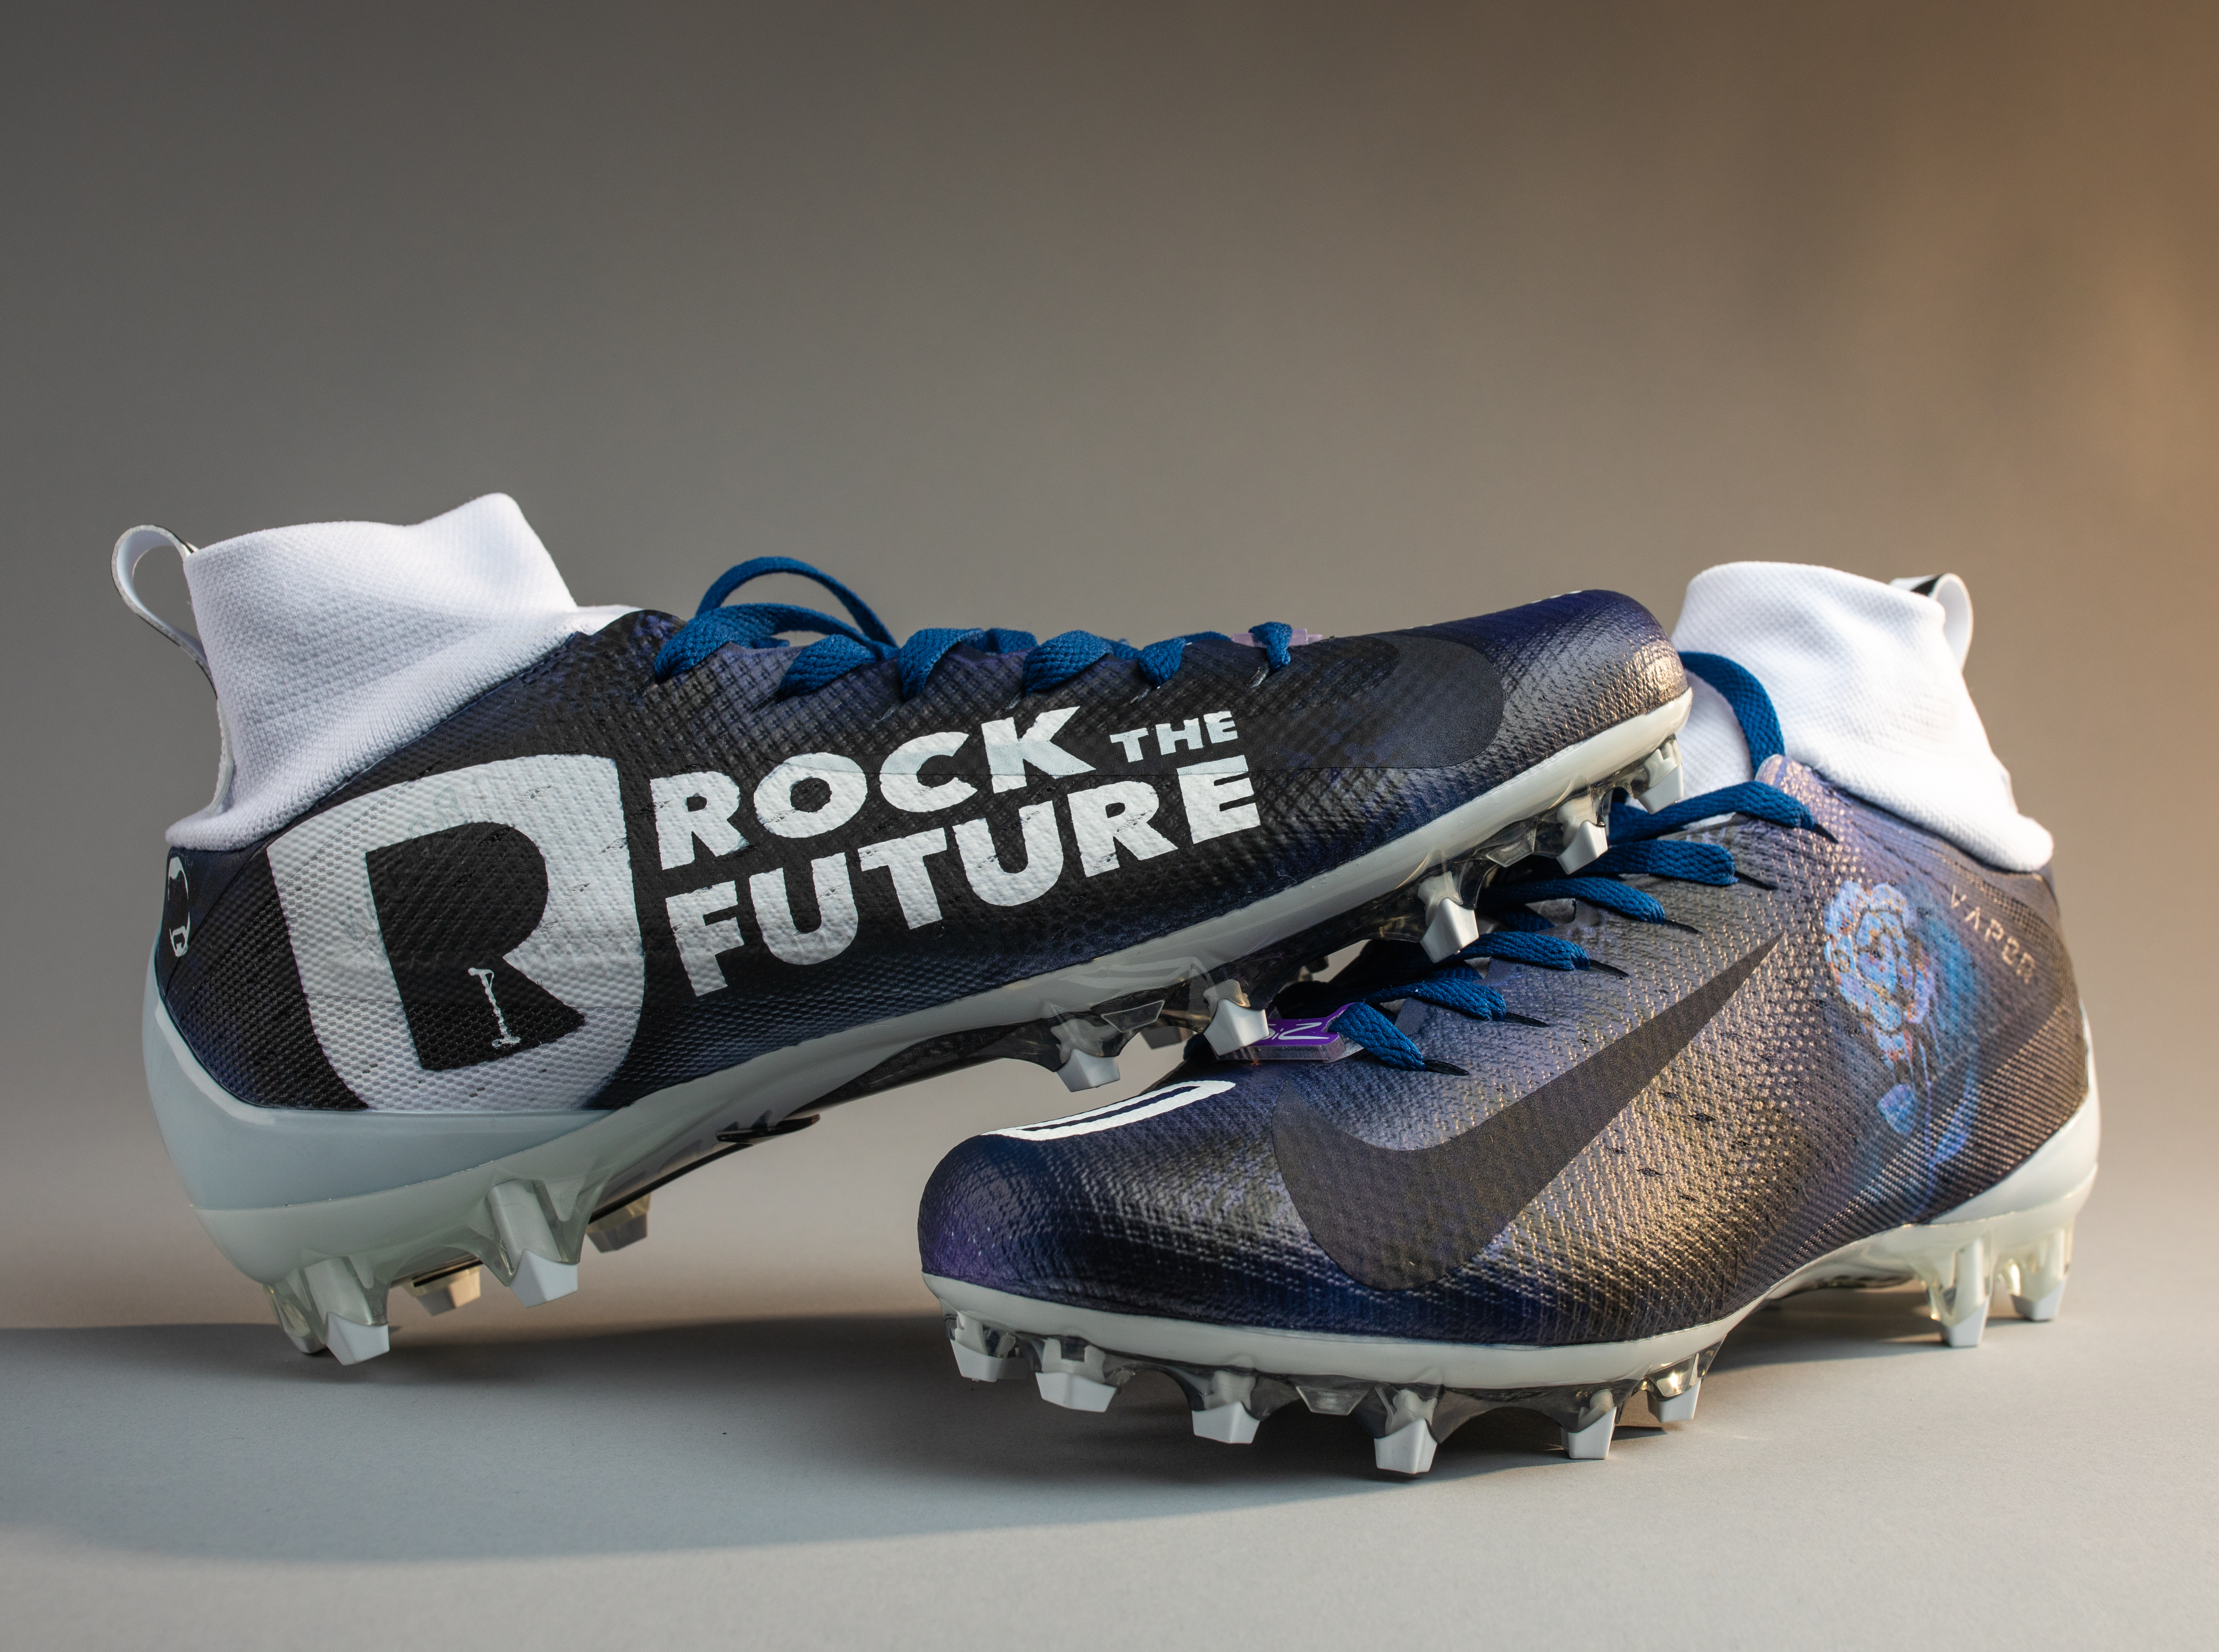 Customized cleats for Corey Clement feature Philly nonprofit Rock to the Future